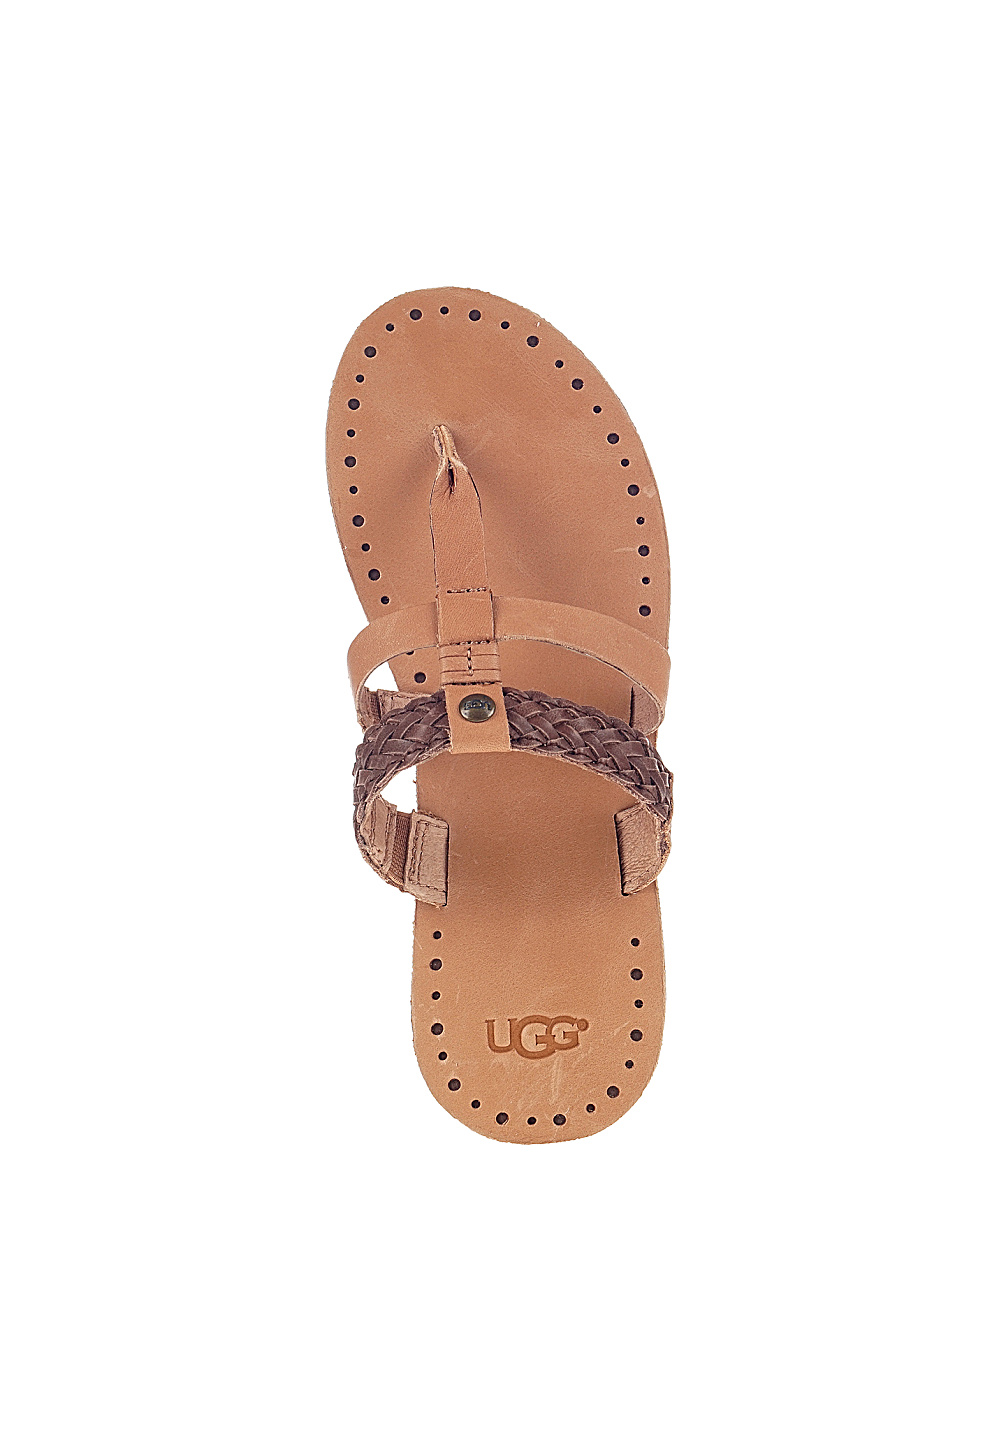 4ee27d21f74 UGG Australia Audra - Sandals for Women - Brown